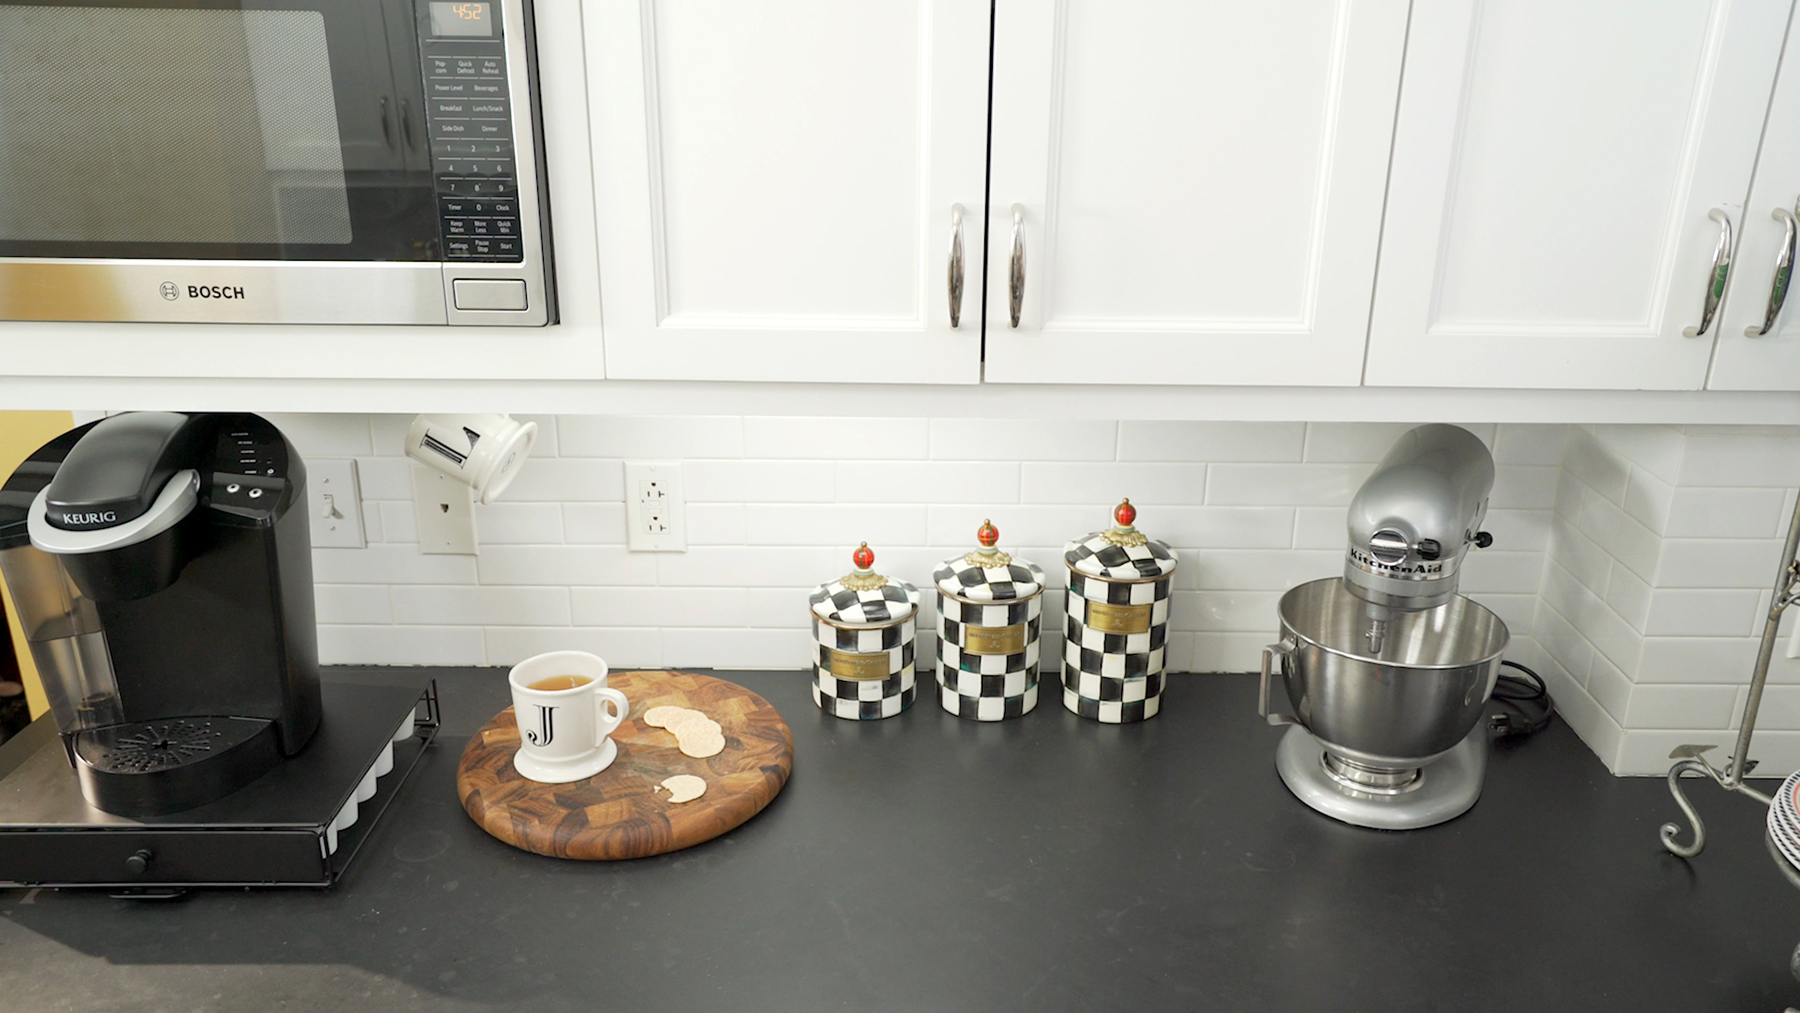 Counter with mixer, coffeemaker, canisters